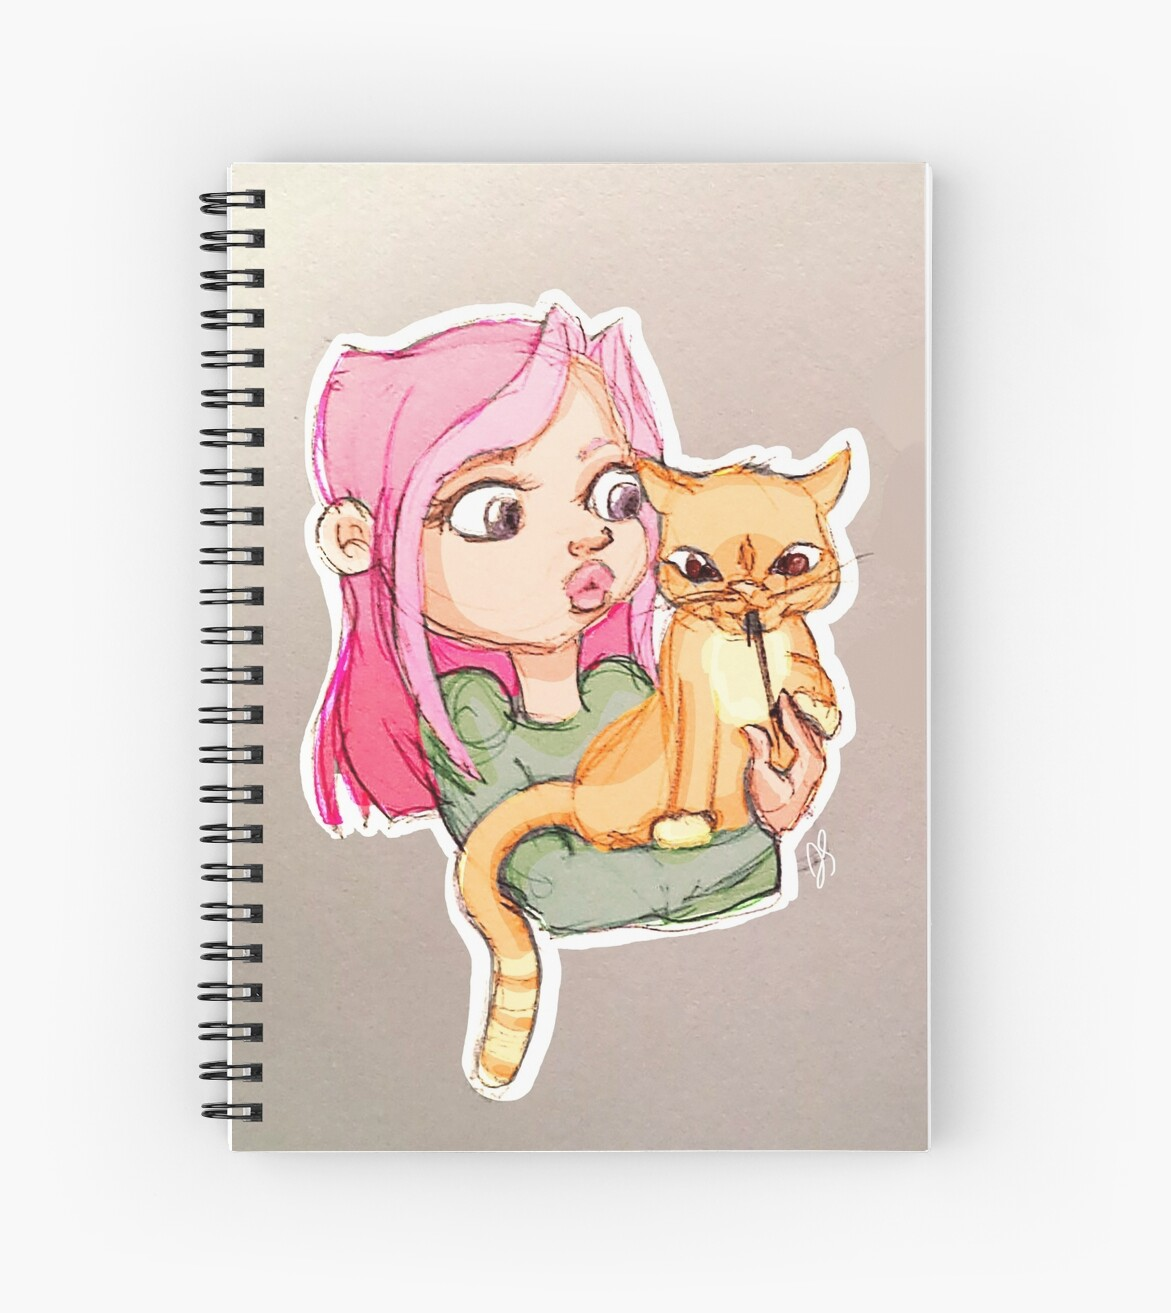 girl with cat by Jenna Staller